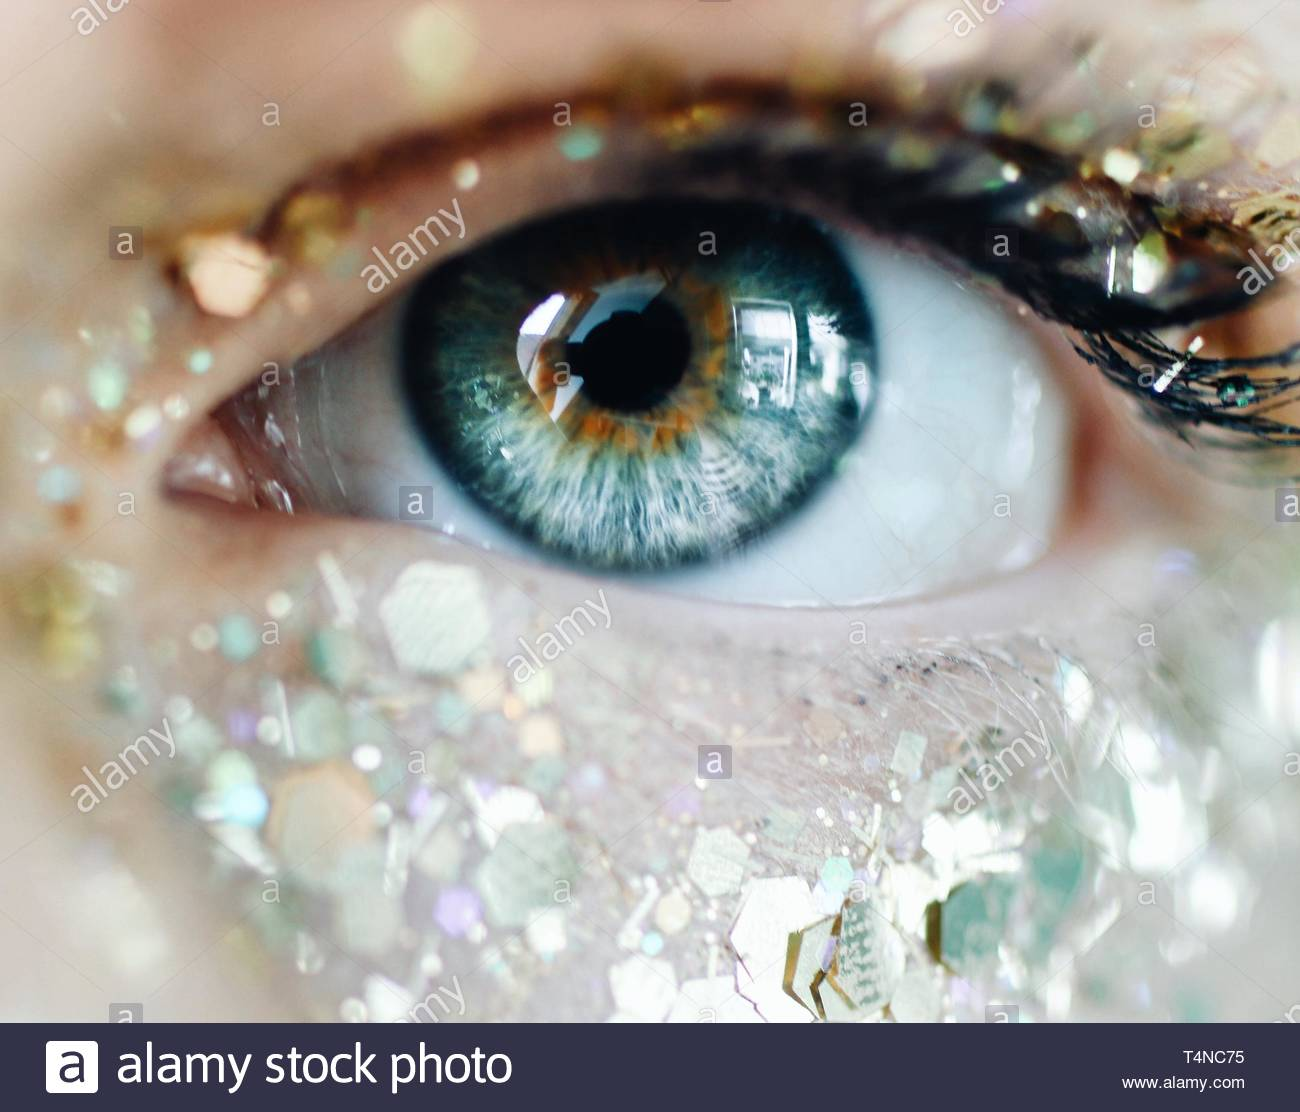 close-up photography of human eye with glitters Stock Photo